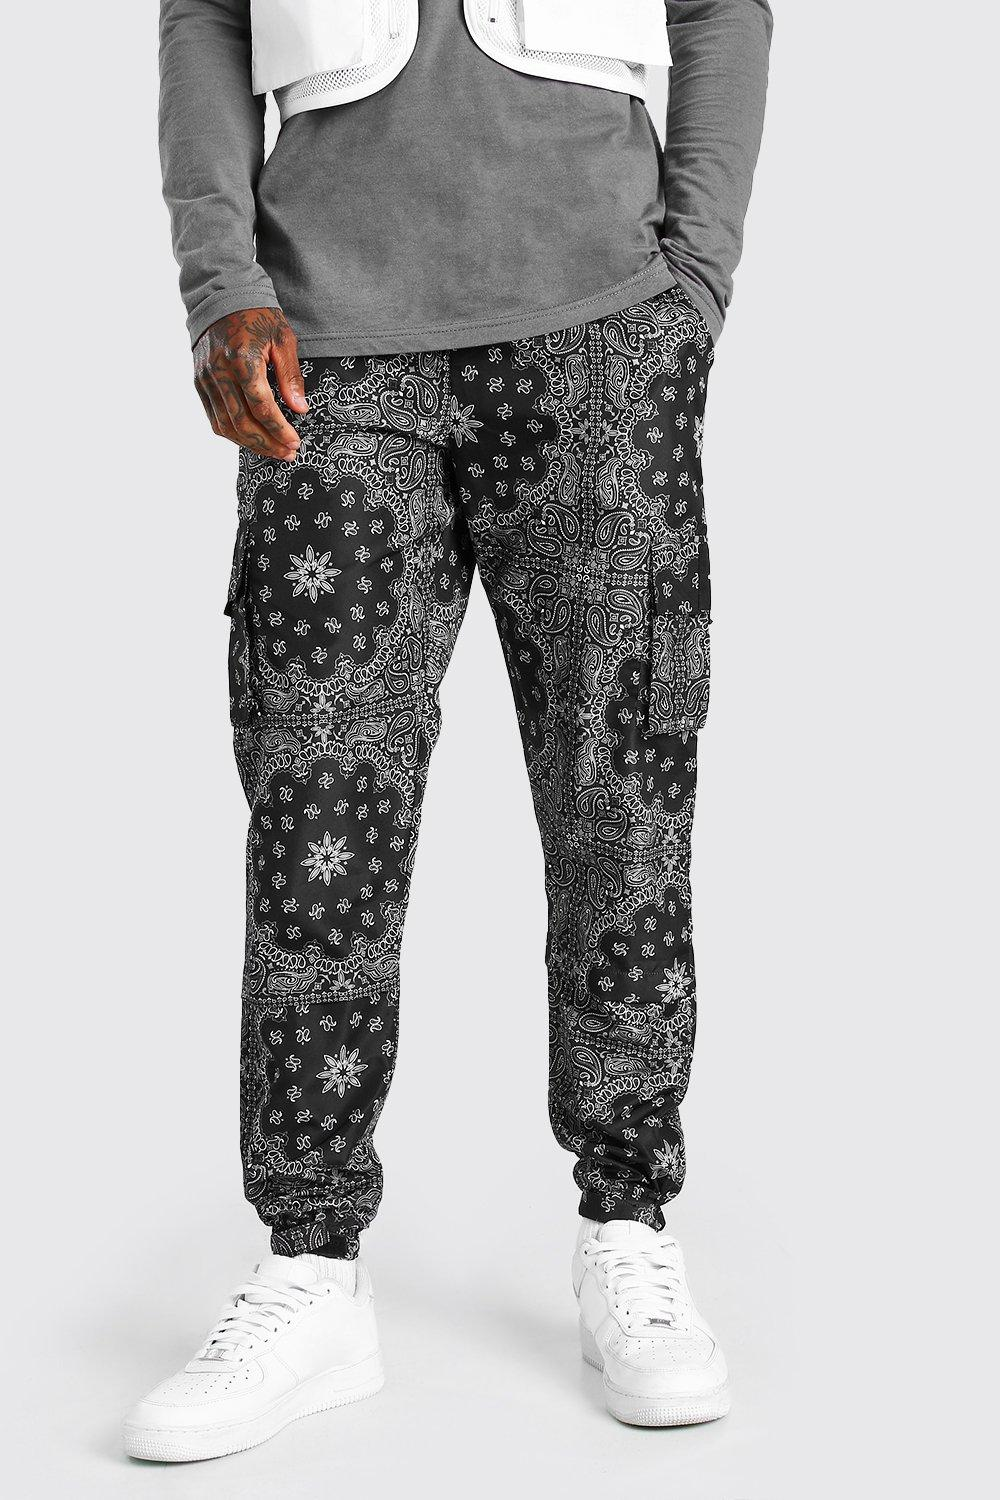 Hippie Pants, Jeans, Bell Bottoms, Palazzo, Yoga Mens Nylon Bandana Printed Cargo Pants - Black $31.50 AT vintagedancer.com